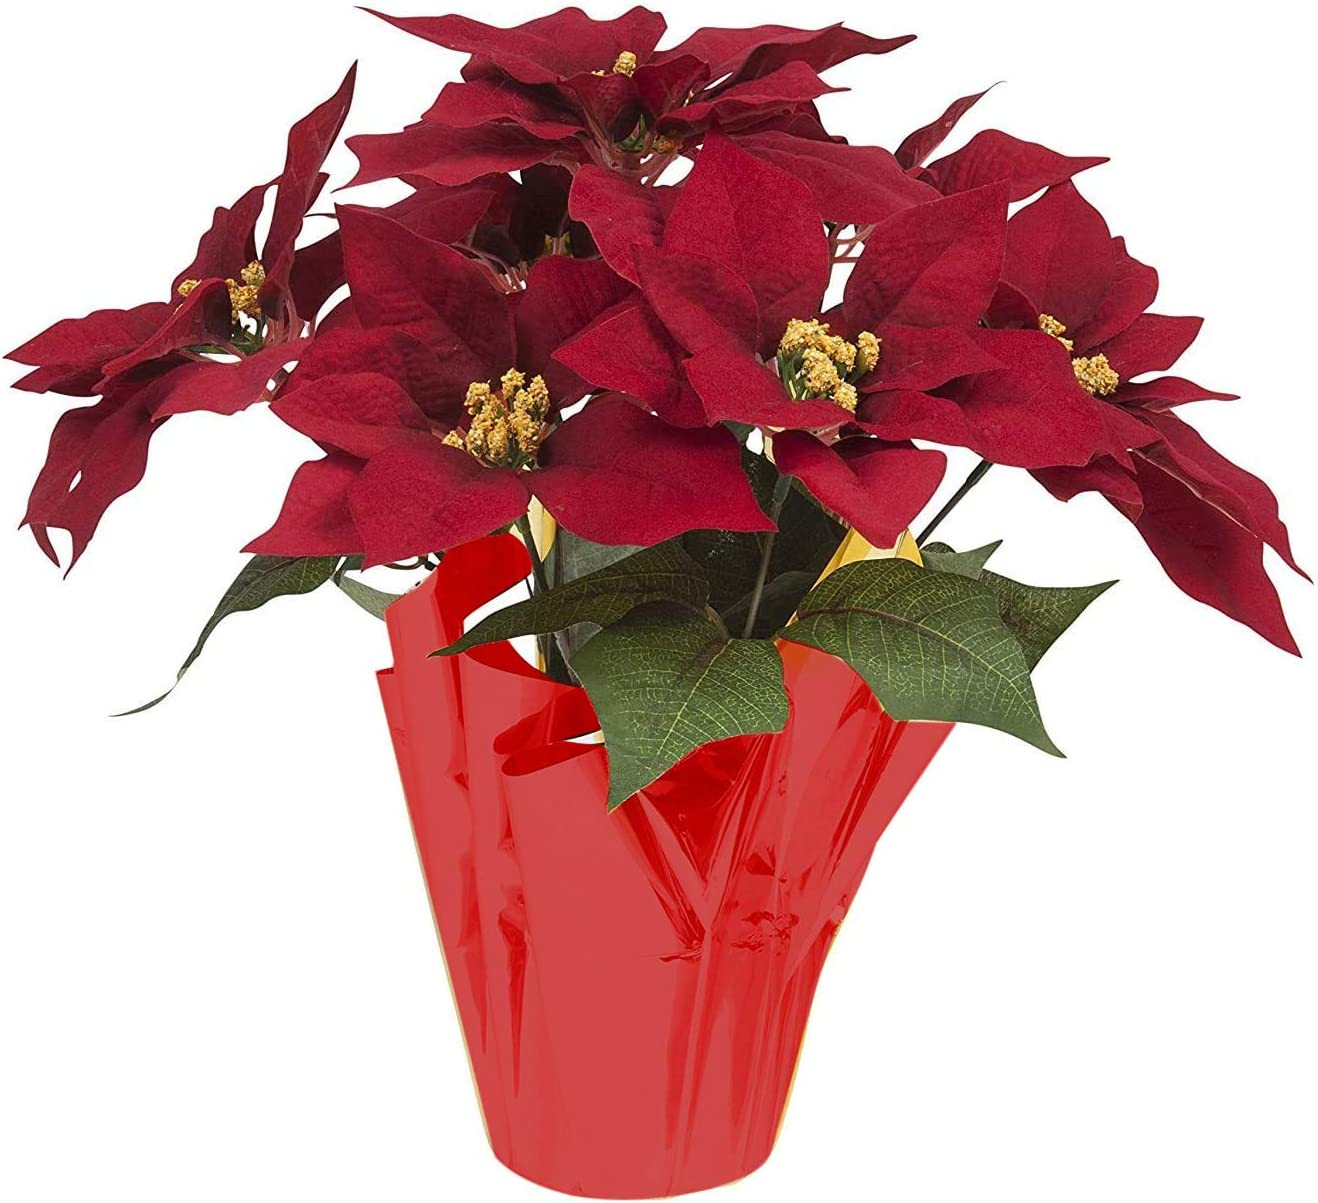 Amazon Com 16 Inch Poinsettia Flowers Plant Pot Artificial Red Christmas Poinsettias Silk With Gold Foil Wrap For Home Garden Decorations Kitchen Dining